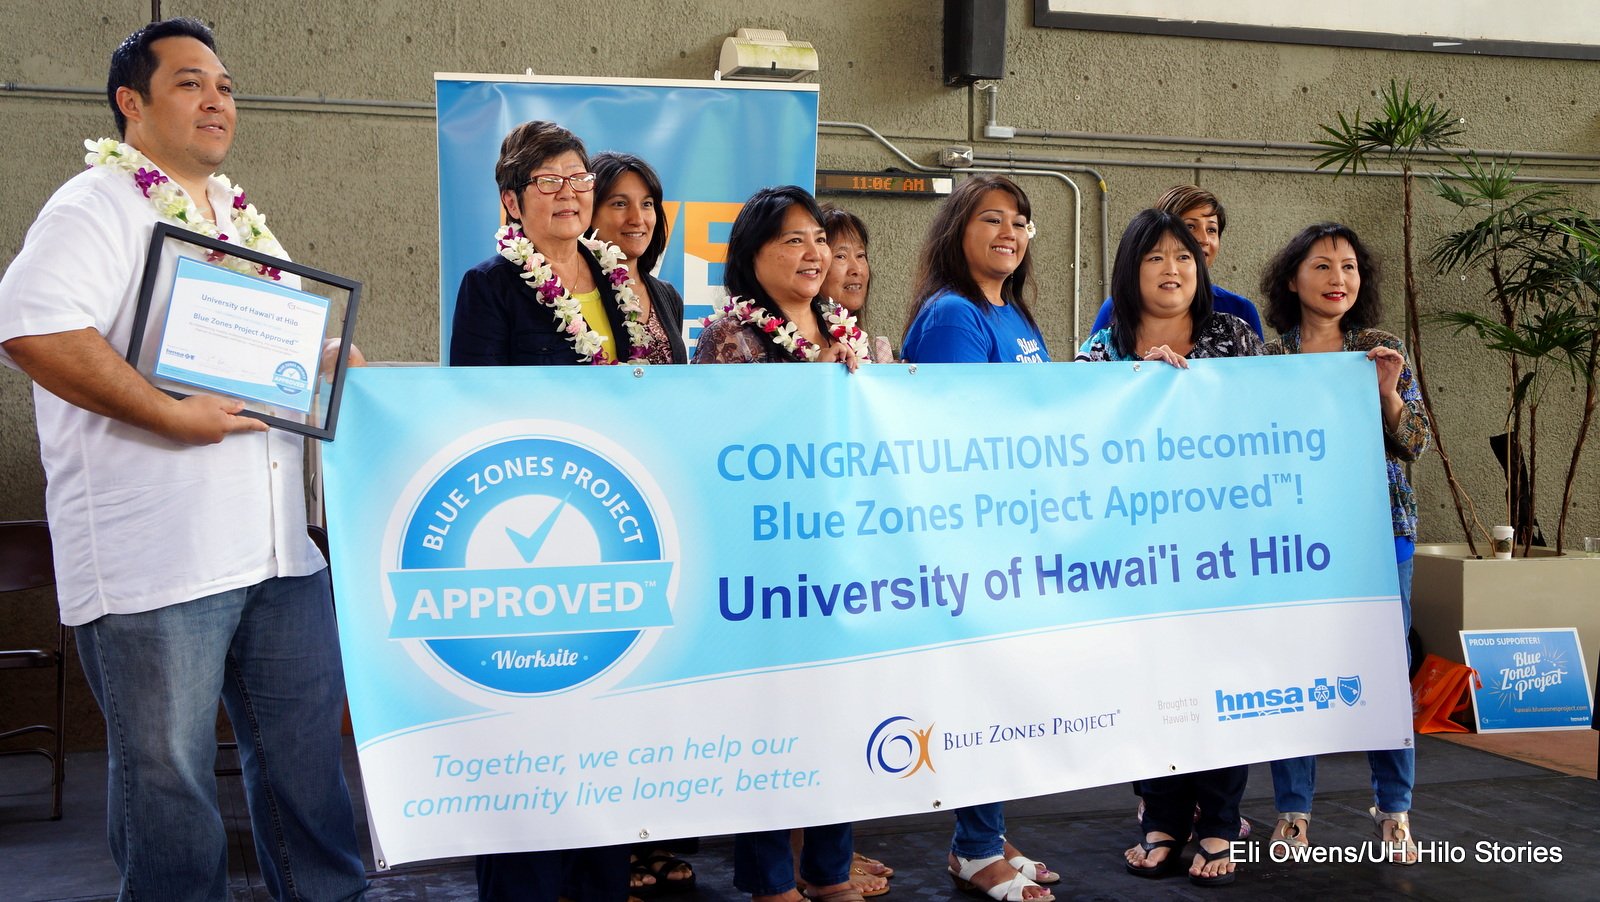 Group photo with banner: CONGRATULATIONS on becoming B;ue Zones Project Approved! University of Hawaii at Hilo. Together we can help our community live longer, better. Blue Zones Project logo and HMSA logo.